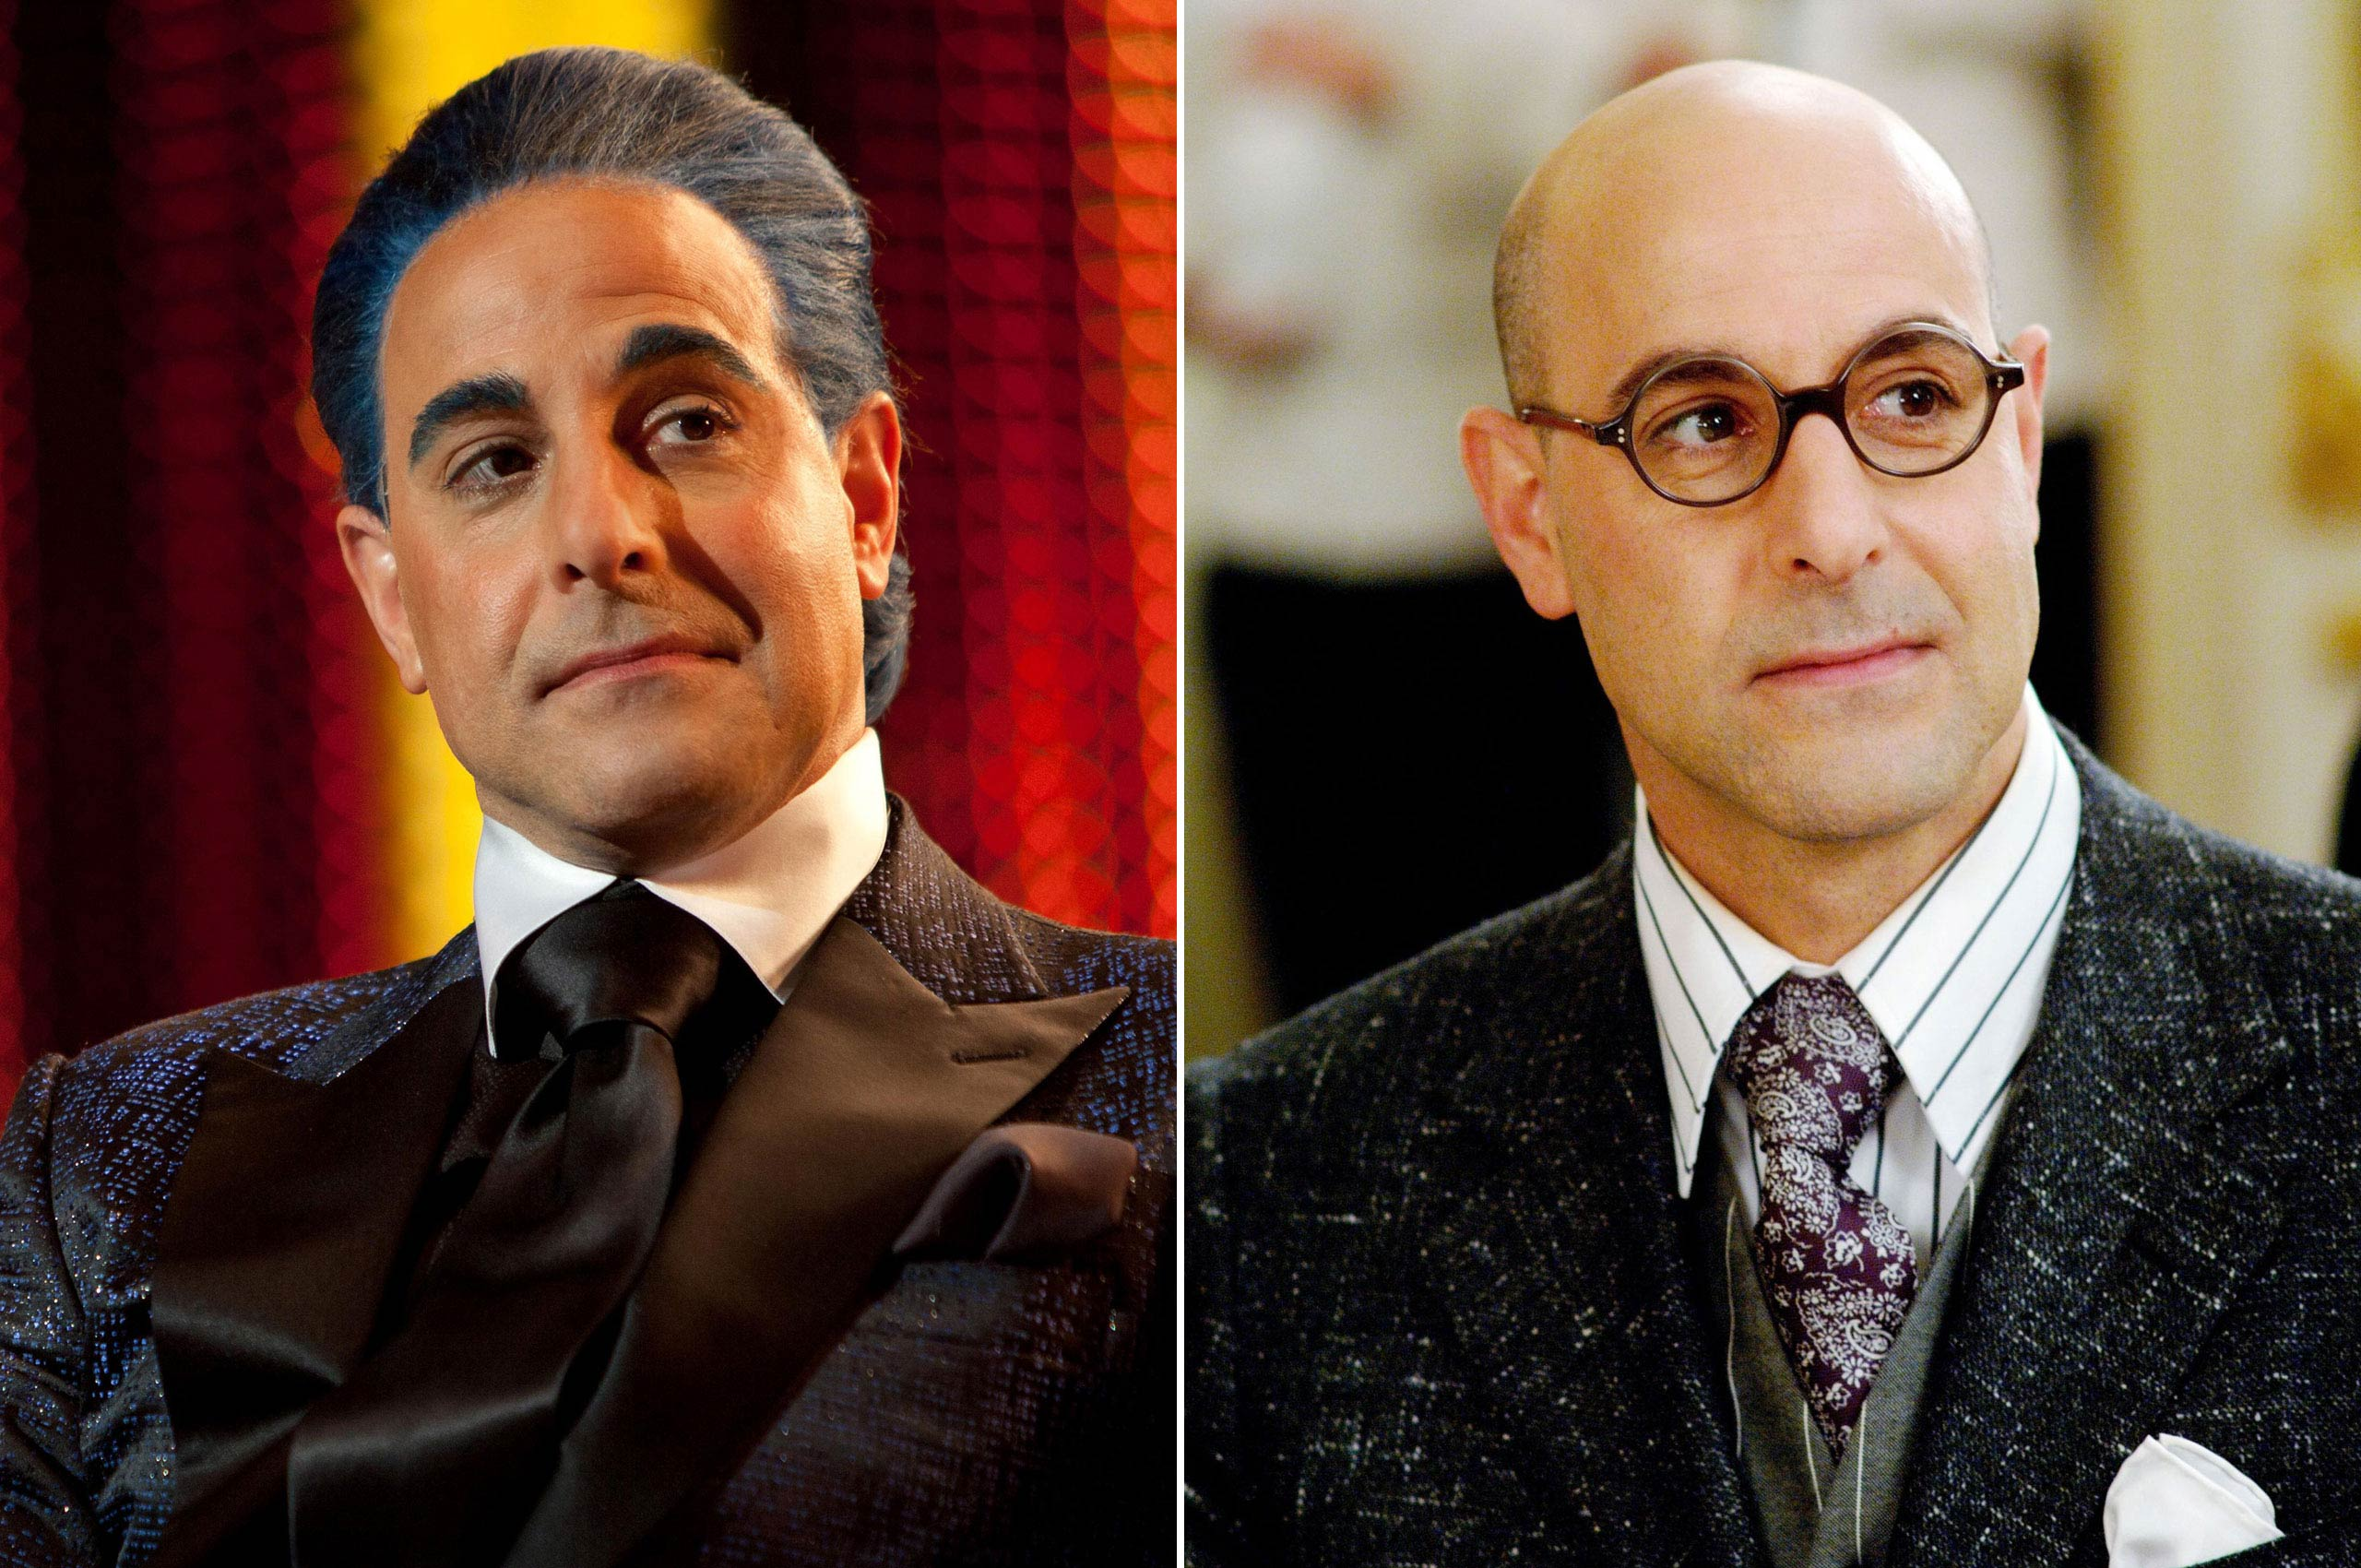 Before he was interviewing the Hunger Games victors about the minutiae of their lives as Caesar Flickerman, Stanley Tucci chased the latest in fashion trends as Nigel, the snarky art director of <i>Runway</i> magazine, in the 2006 comedy <i>The Devil Wears Prada</i>.